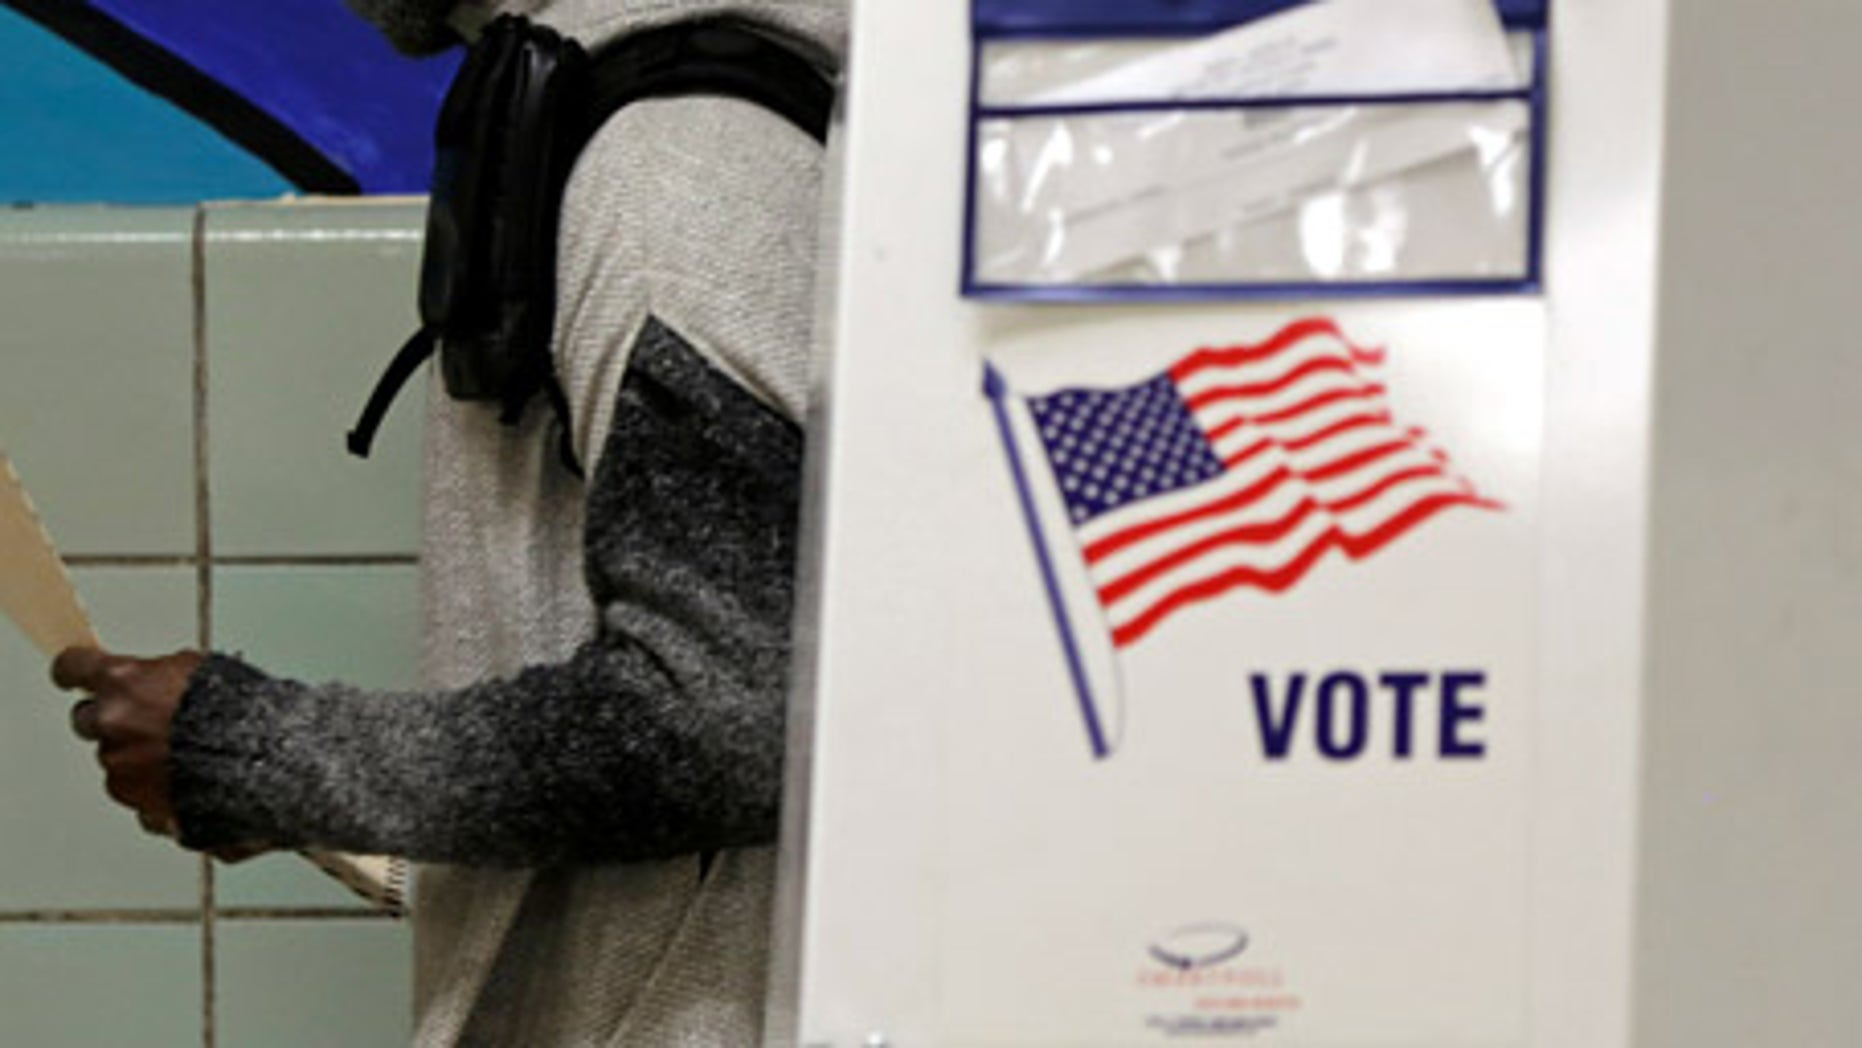 A former elections worker in North Carolina was indicted for mishandling provisional ballot results during the March 2016 primary election.